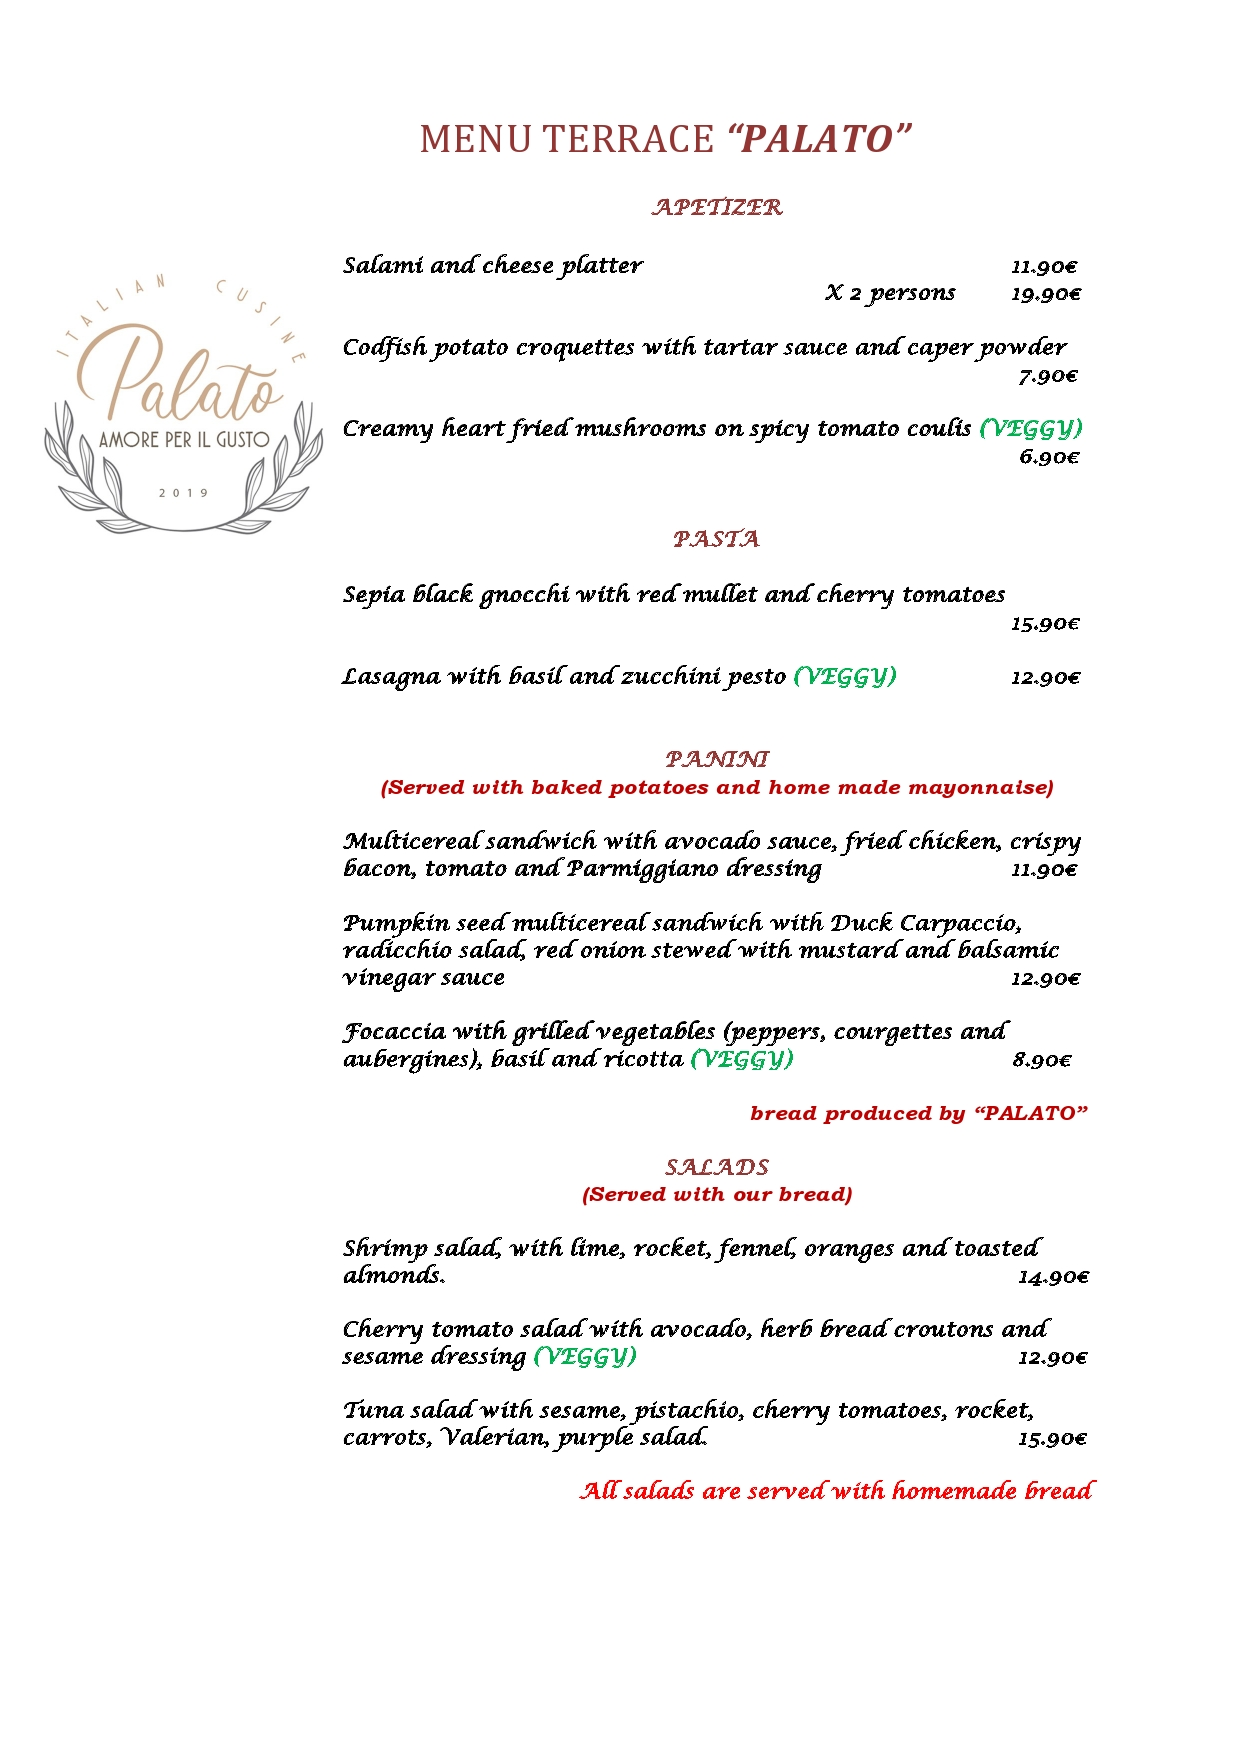 terrace-menu-palato-p1